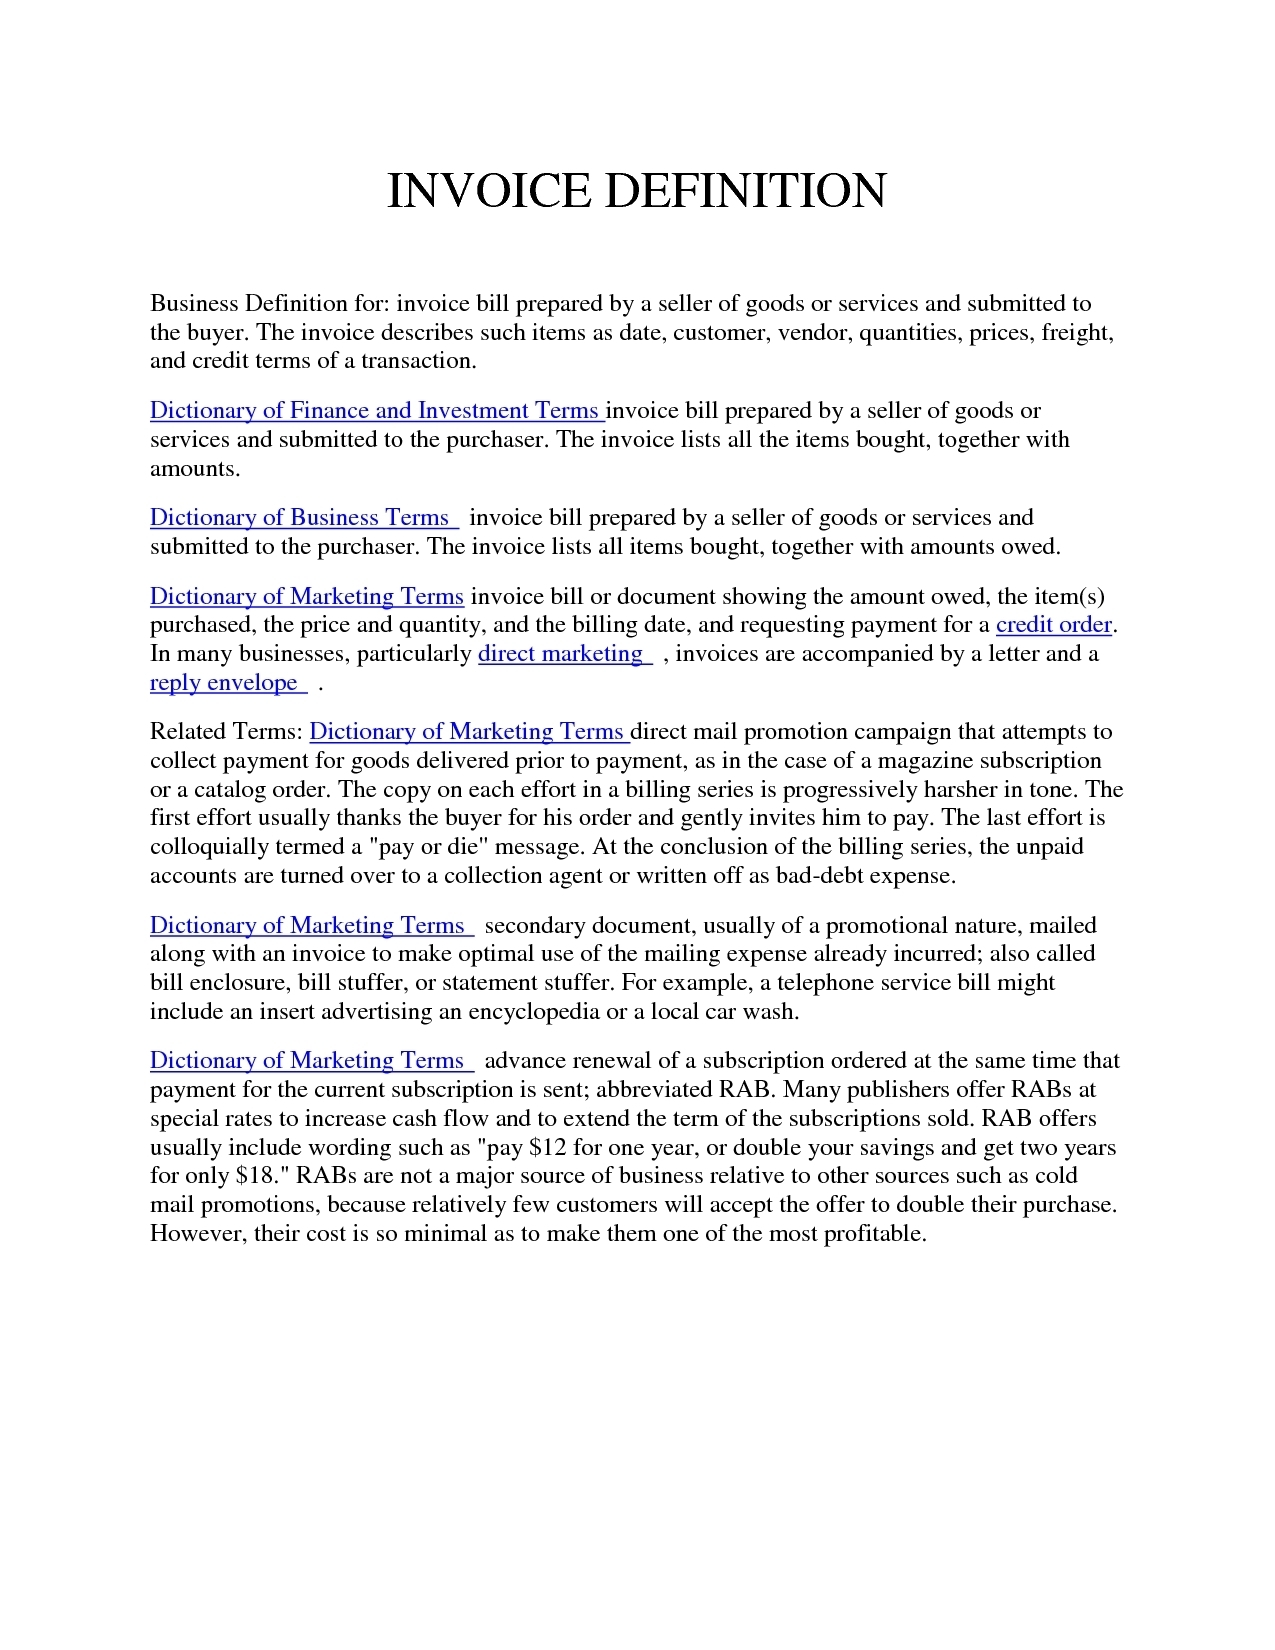 definition of invoice invoice template ideas invoice definition business